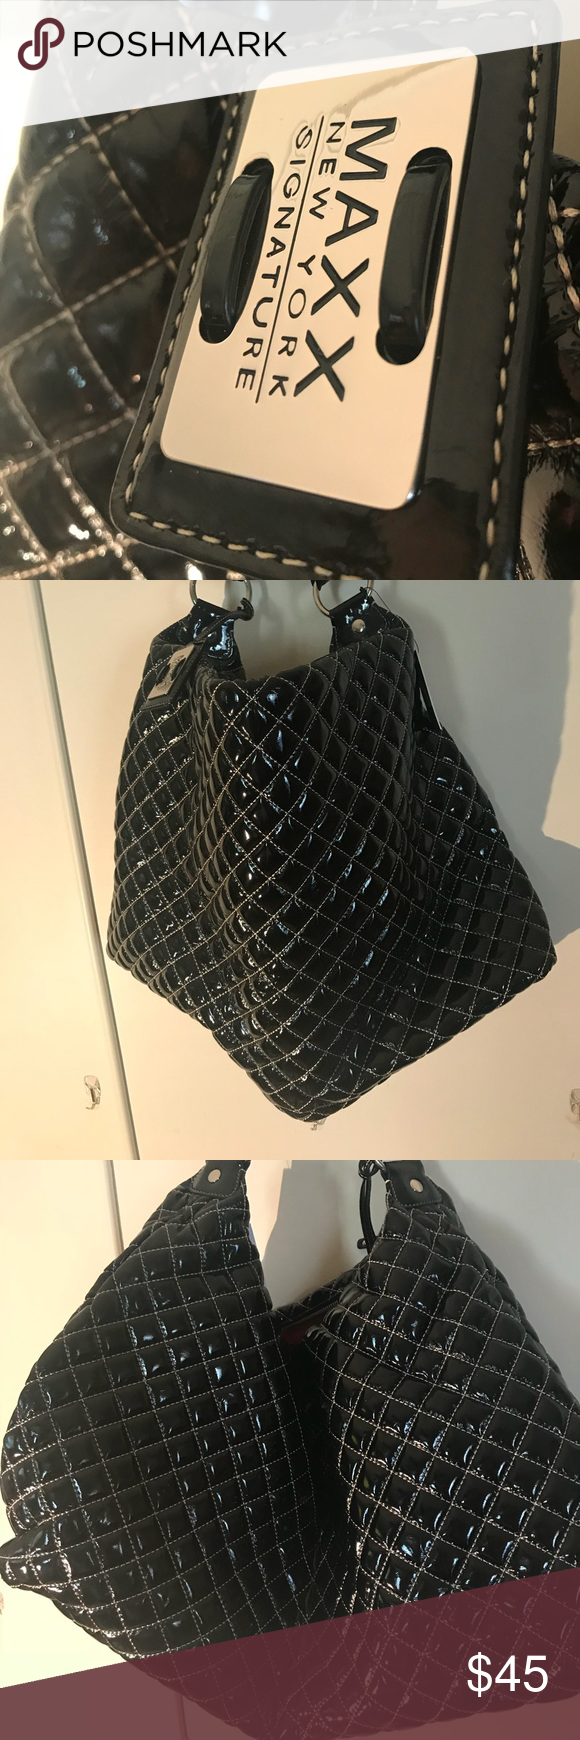 Ma New York Signature Bag A Beautiful Quilted Design Without Tags